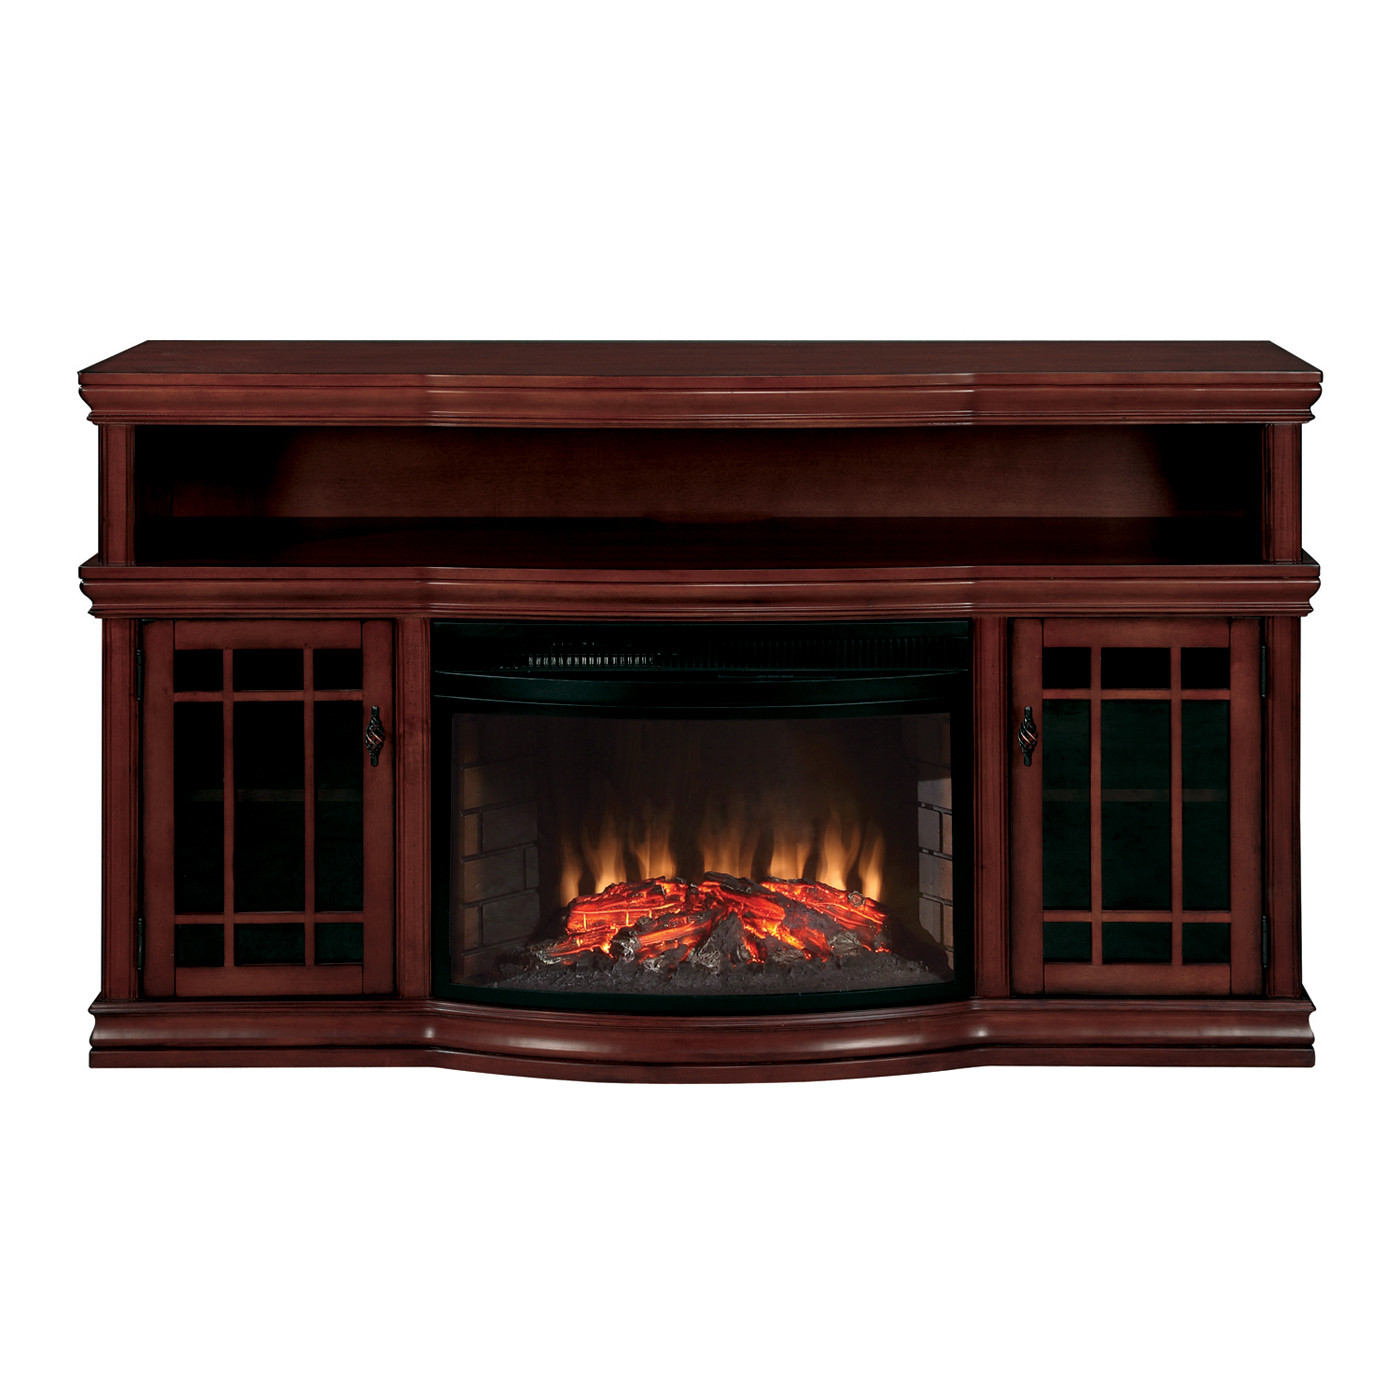 Best ideas about Electric Fireplace Tv Stand Lowes . Save or Pin Muskoka MTVSC2513S Dwyer Electric Fireplace Media Console Now.